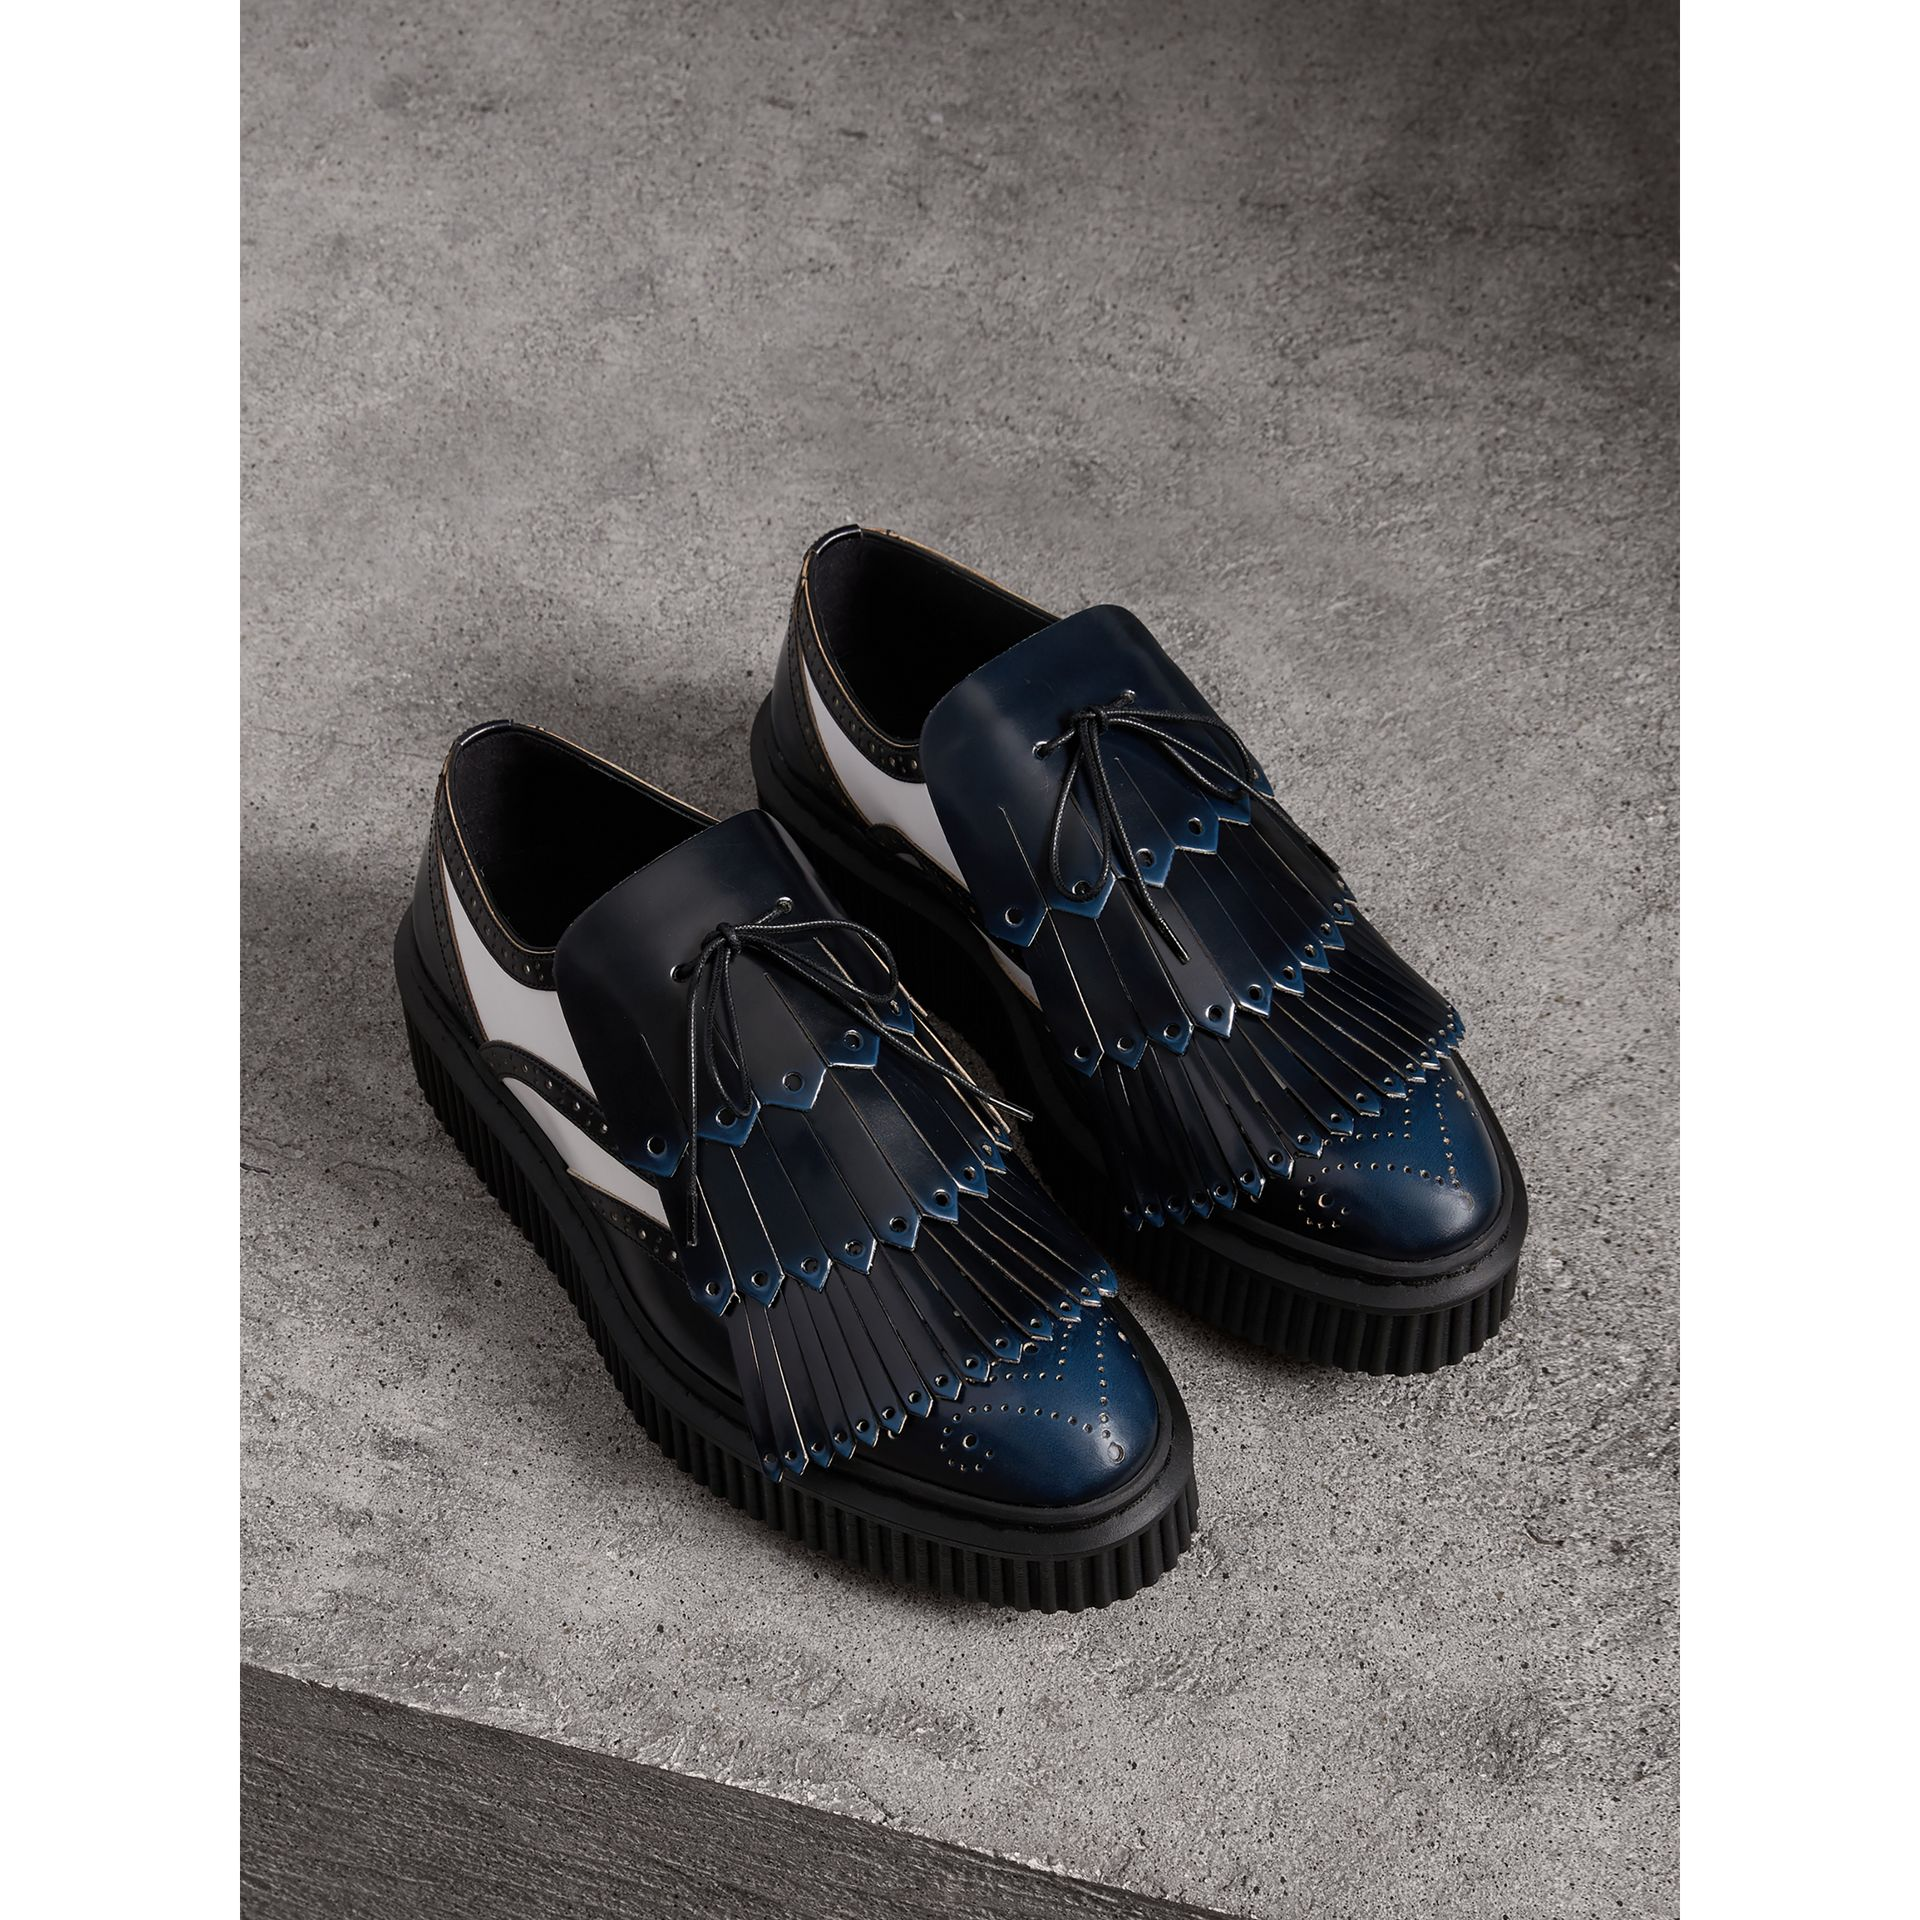 Two-tone Lace-up Kiltie Fringe Leather Shoes in Navy Blue - Women | Burberry Singapore - gallery image 1